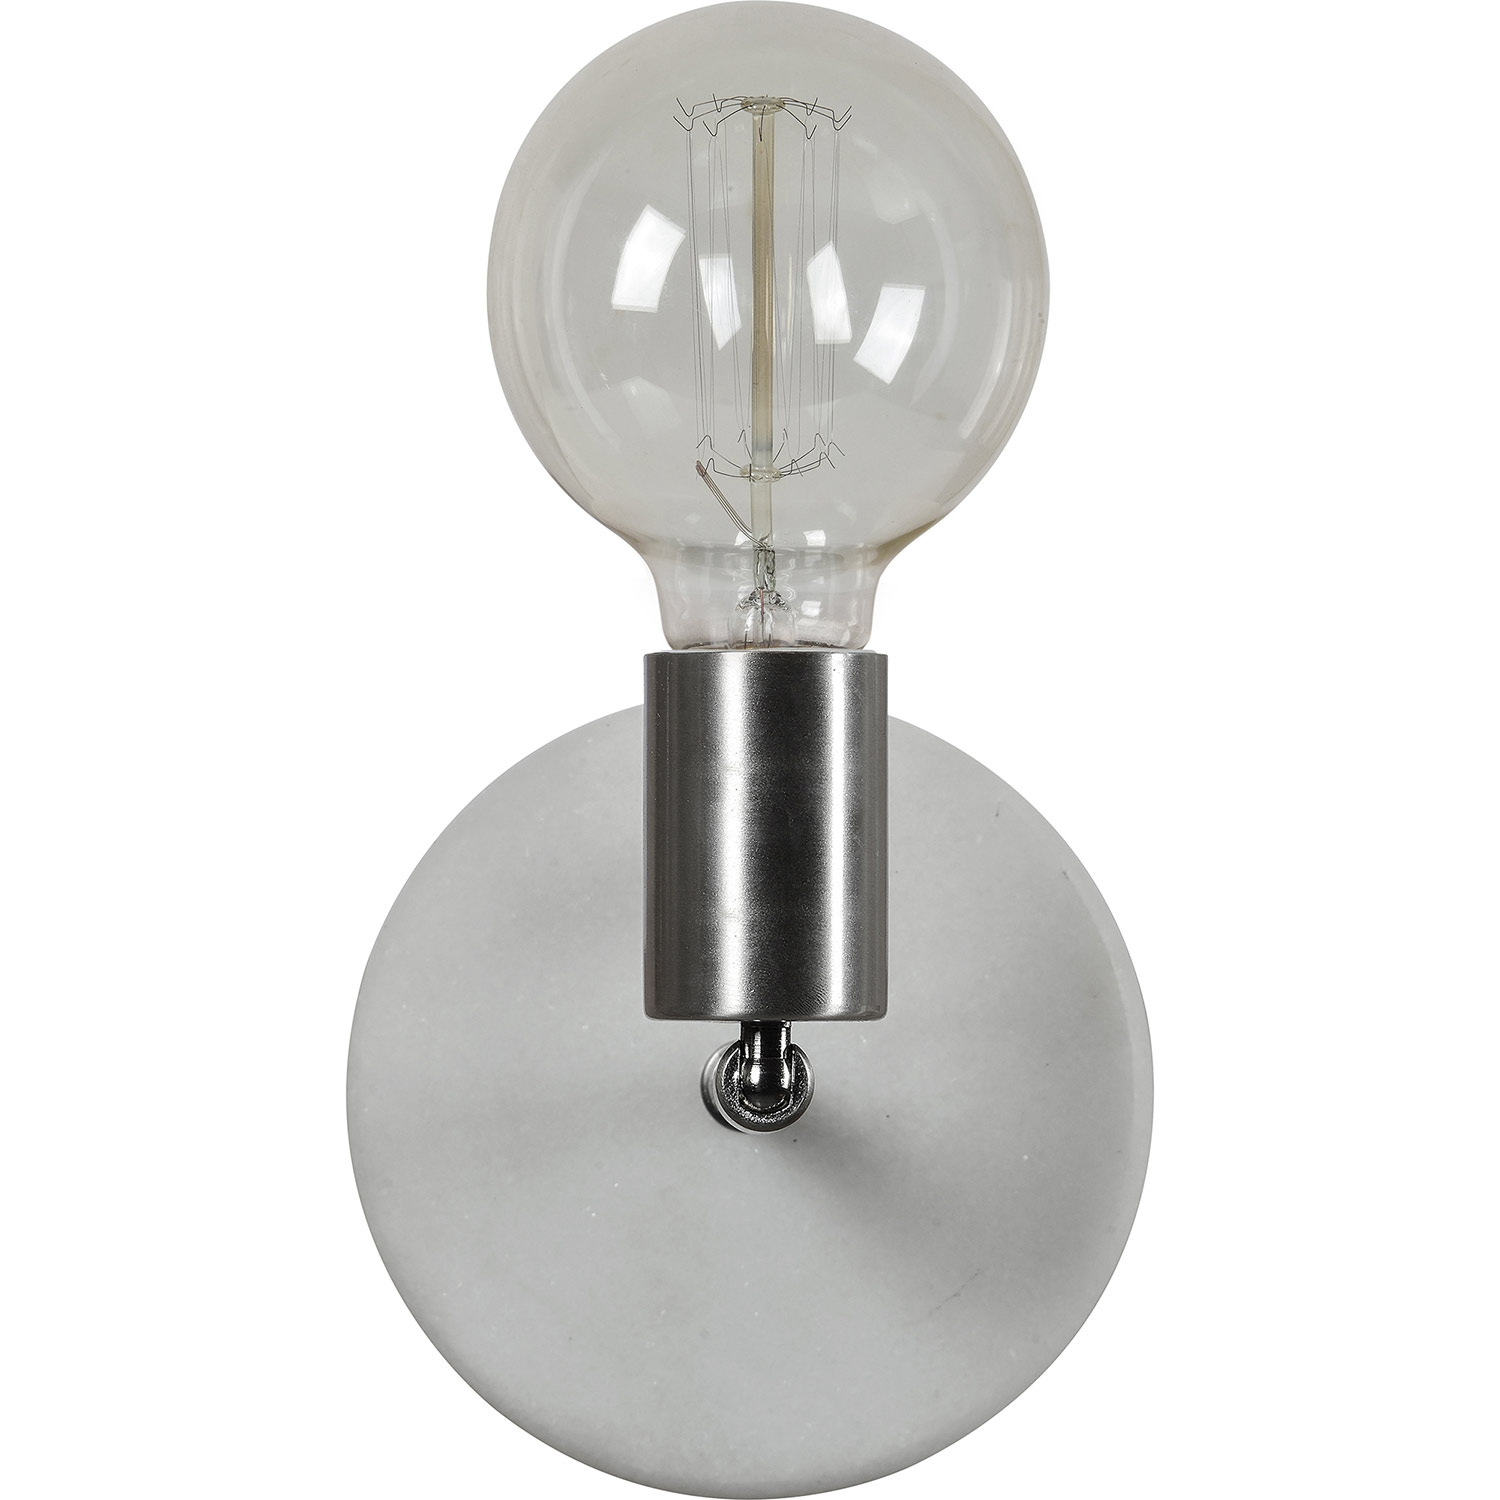 Ren-Wil Margerie Wall Sconce - Satin Nickel/White Marble